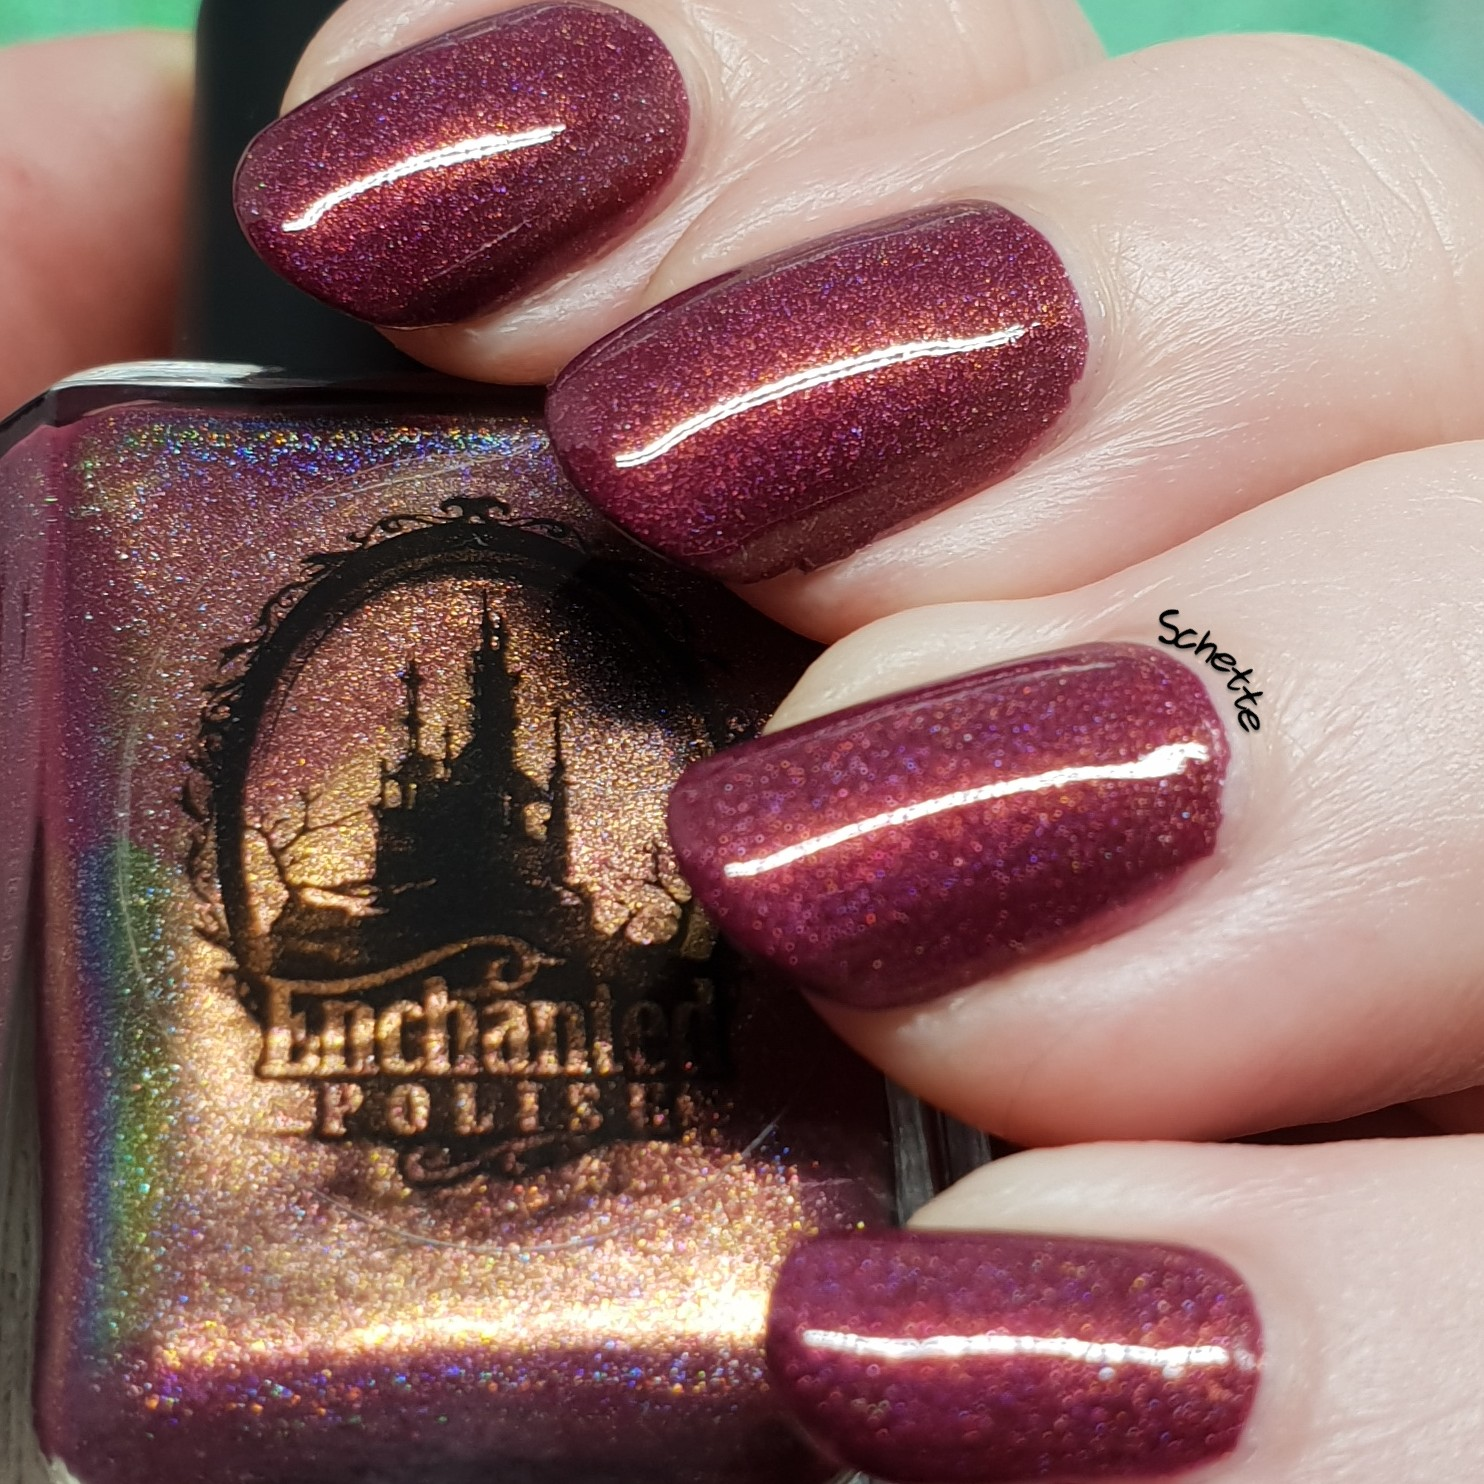 Enchanted Polish - September 2018